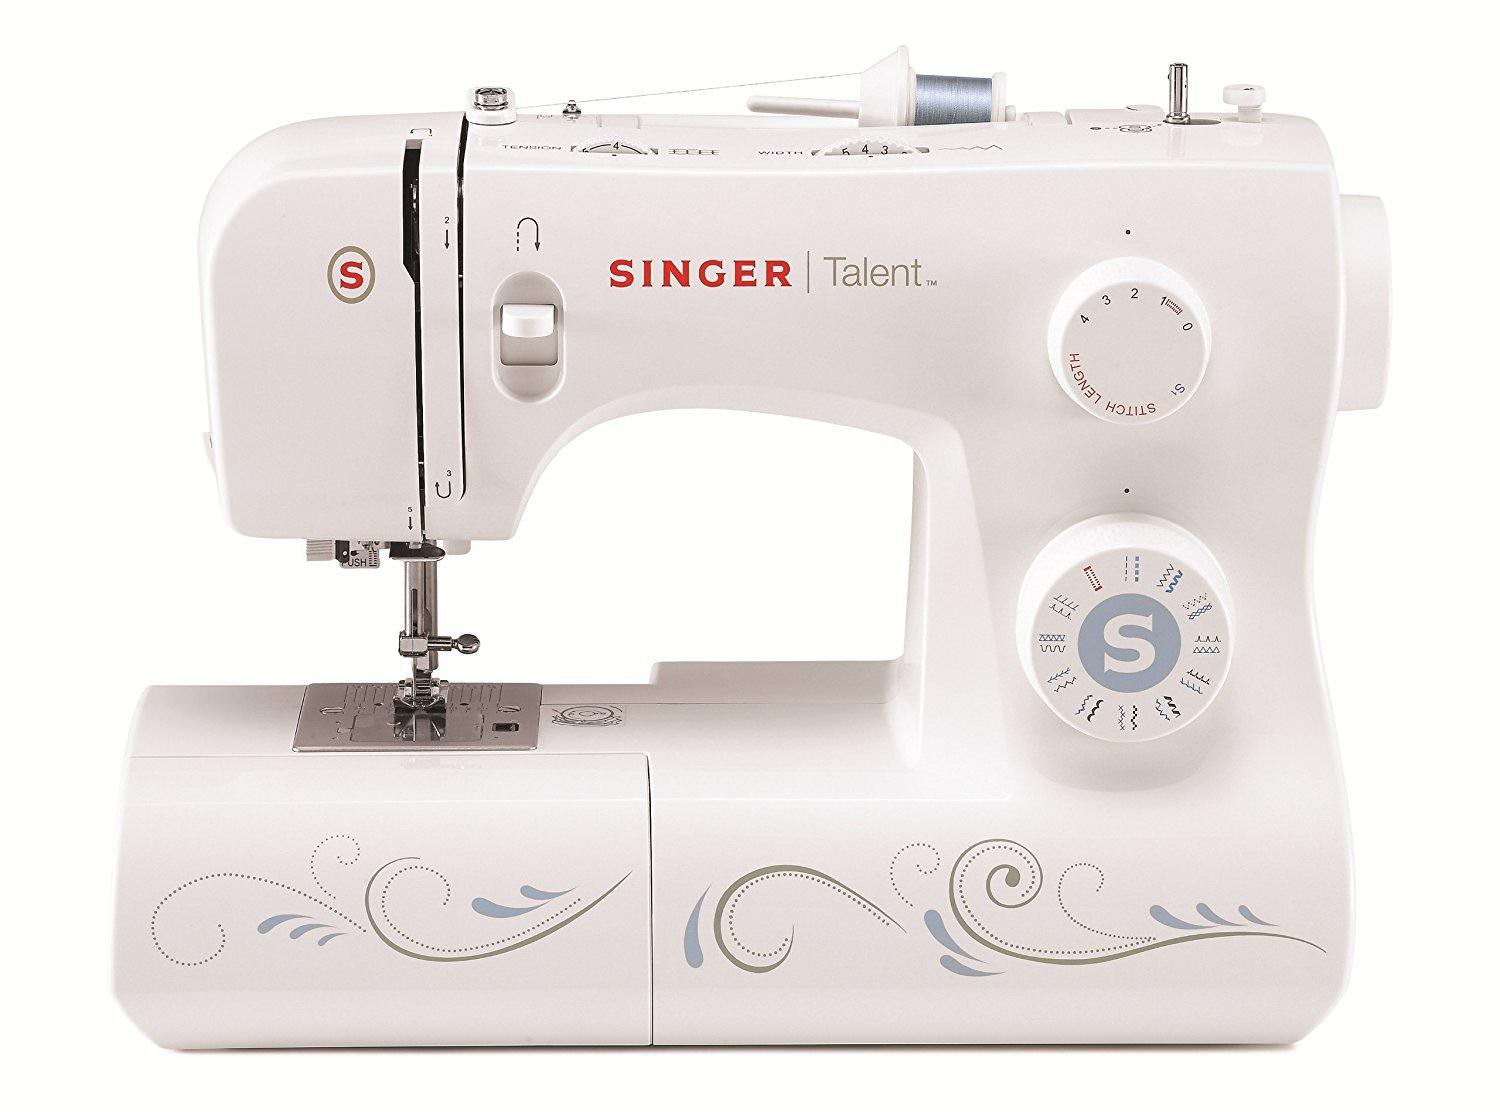 Singer - Talent 3323S - Sewing Machine